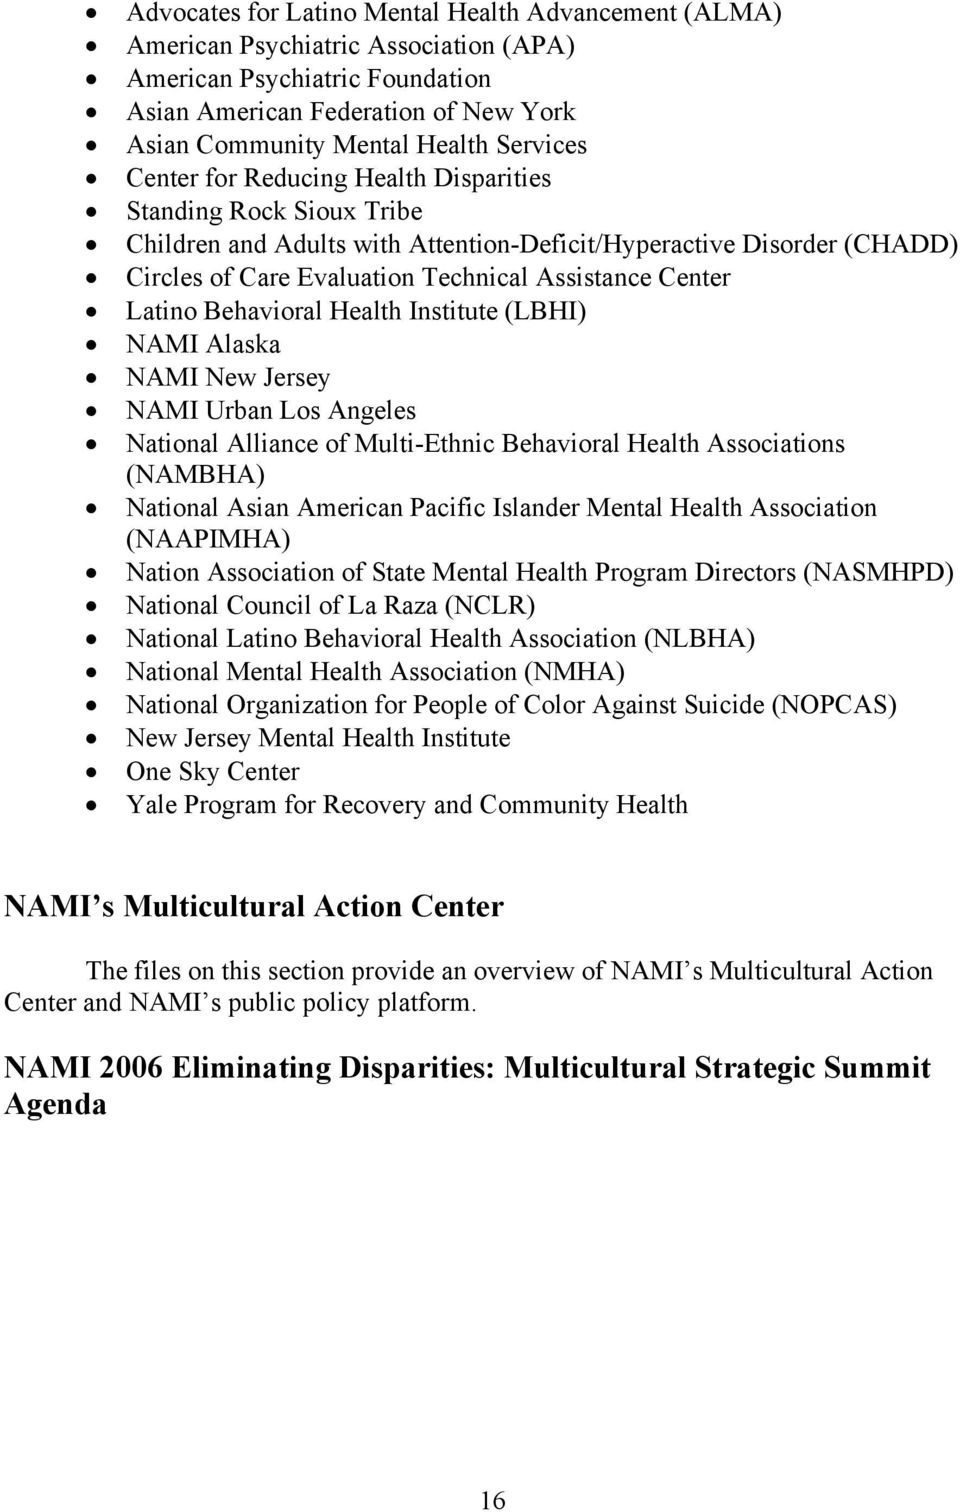 Eliminating Disparities In Mental Health An Overview Pdf